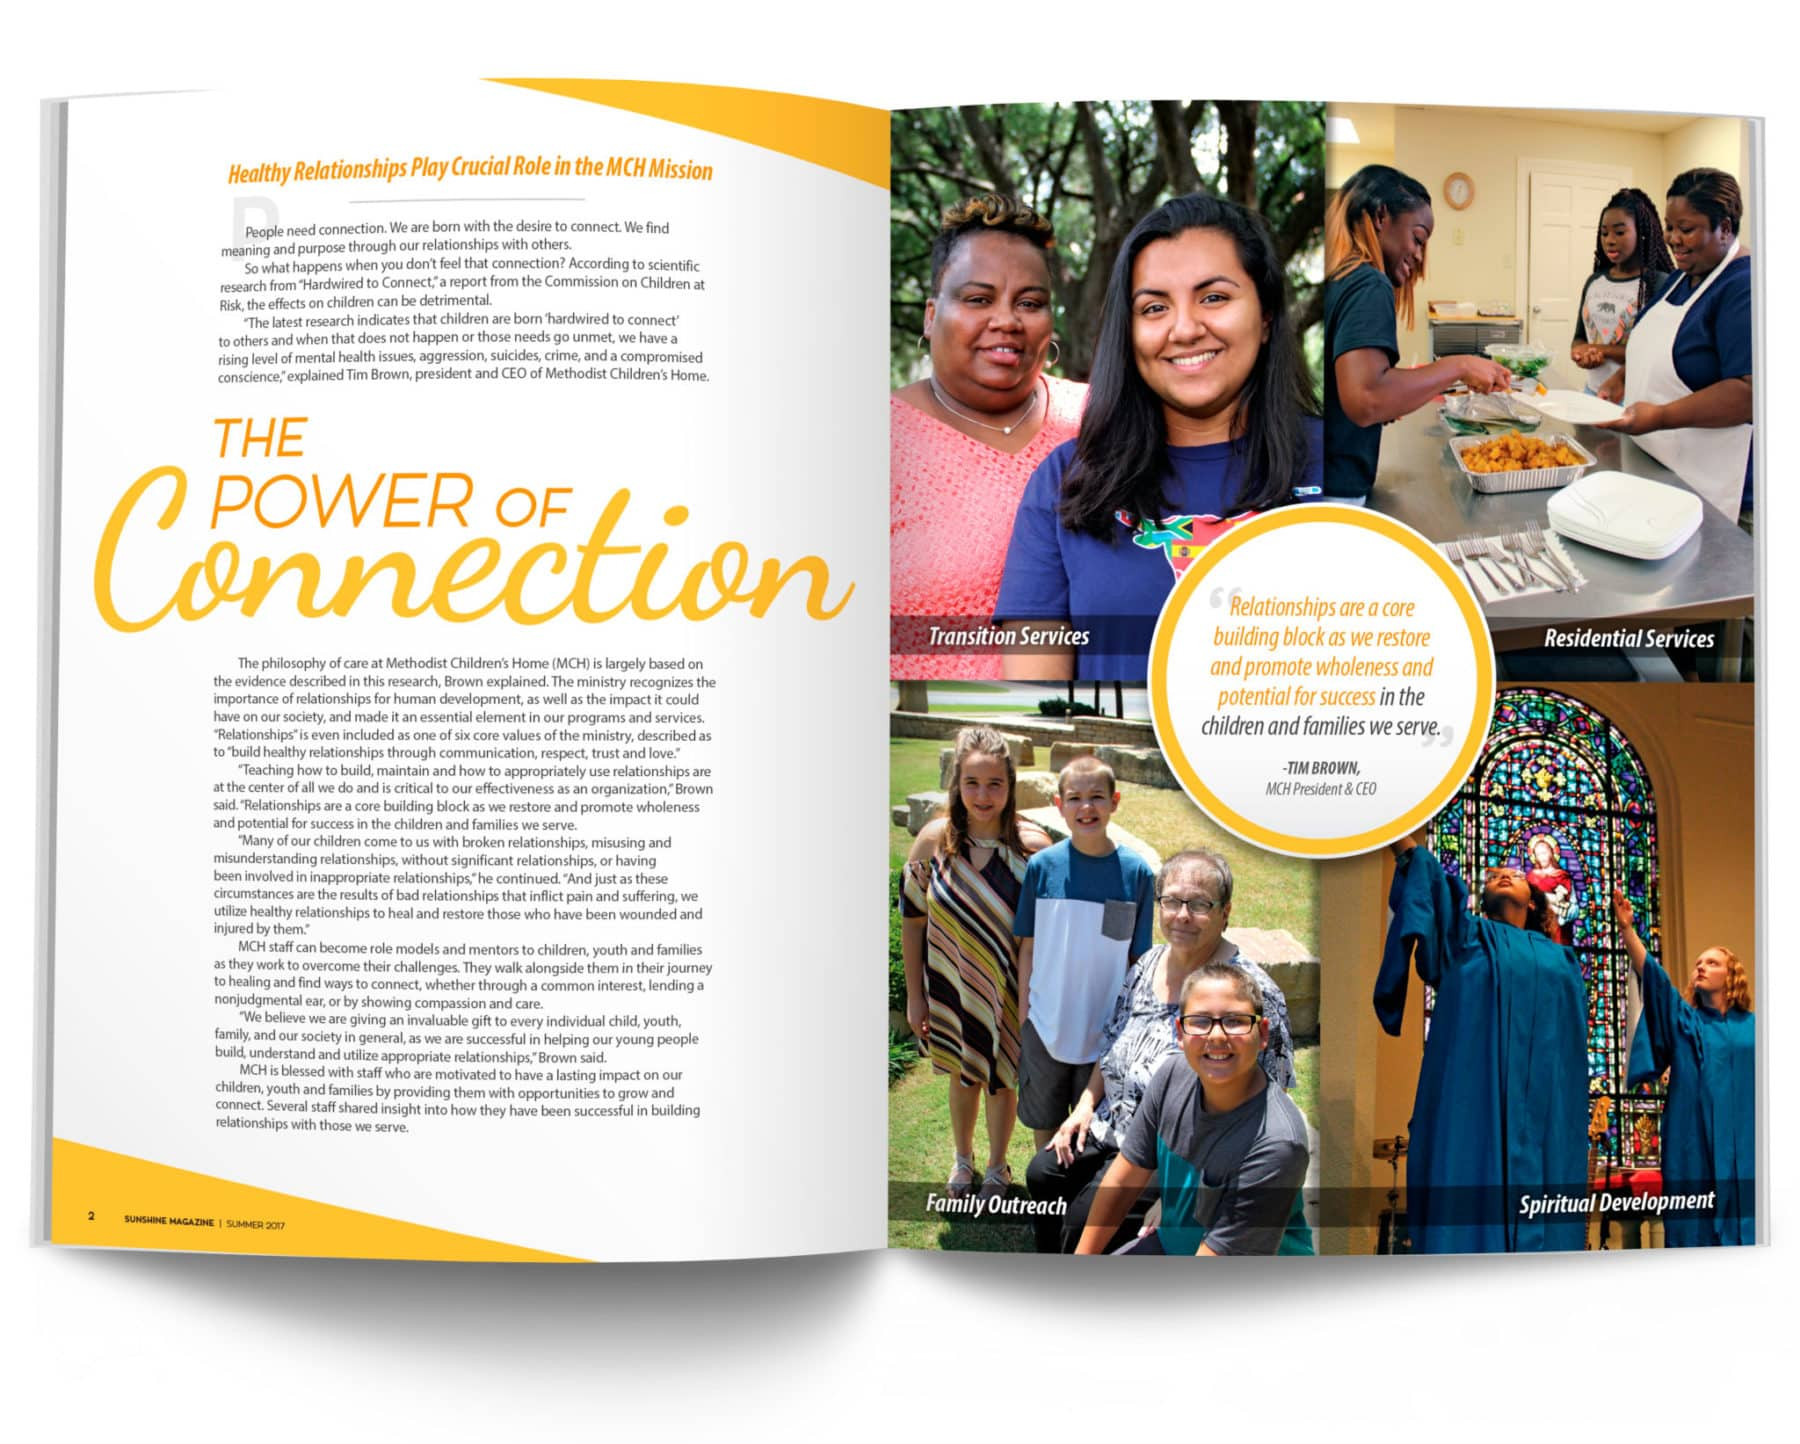 Magazine Spread - The Power of Connection